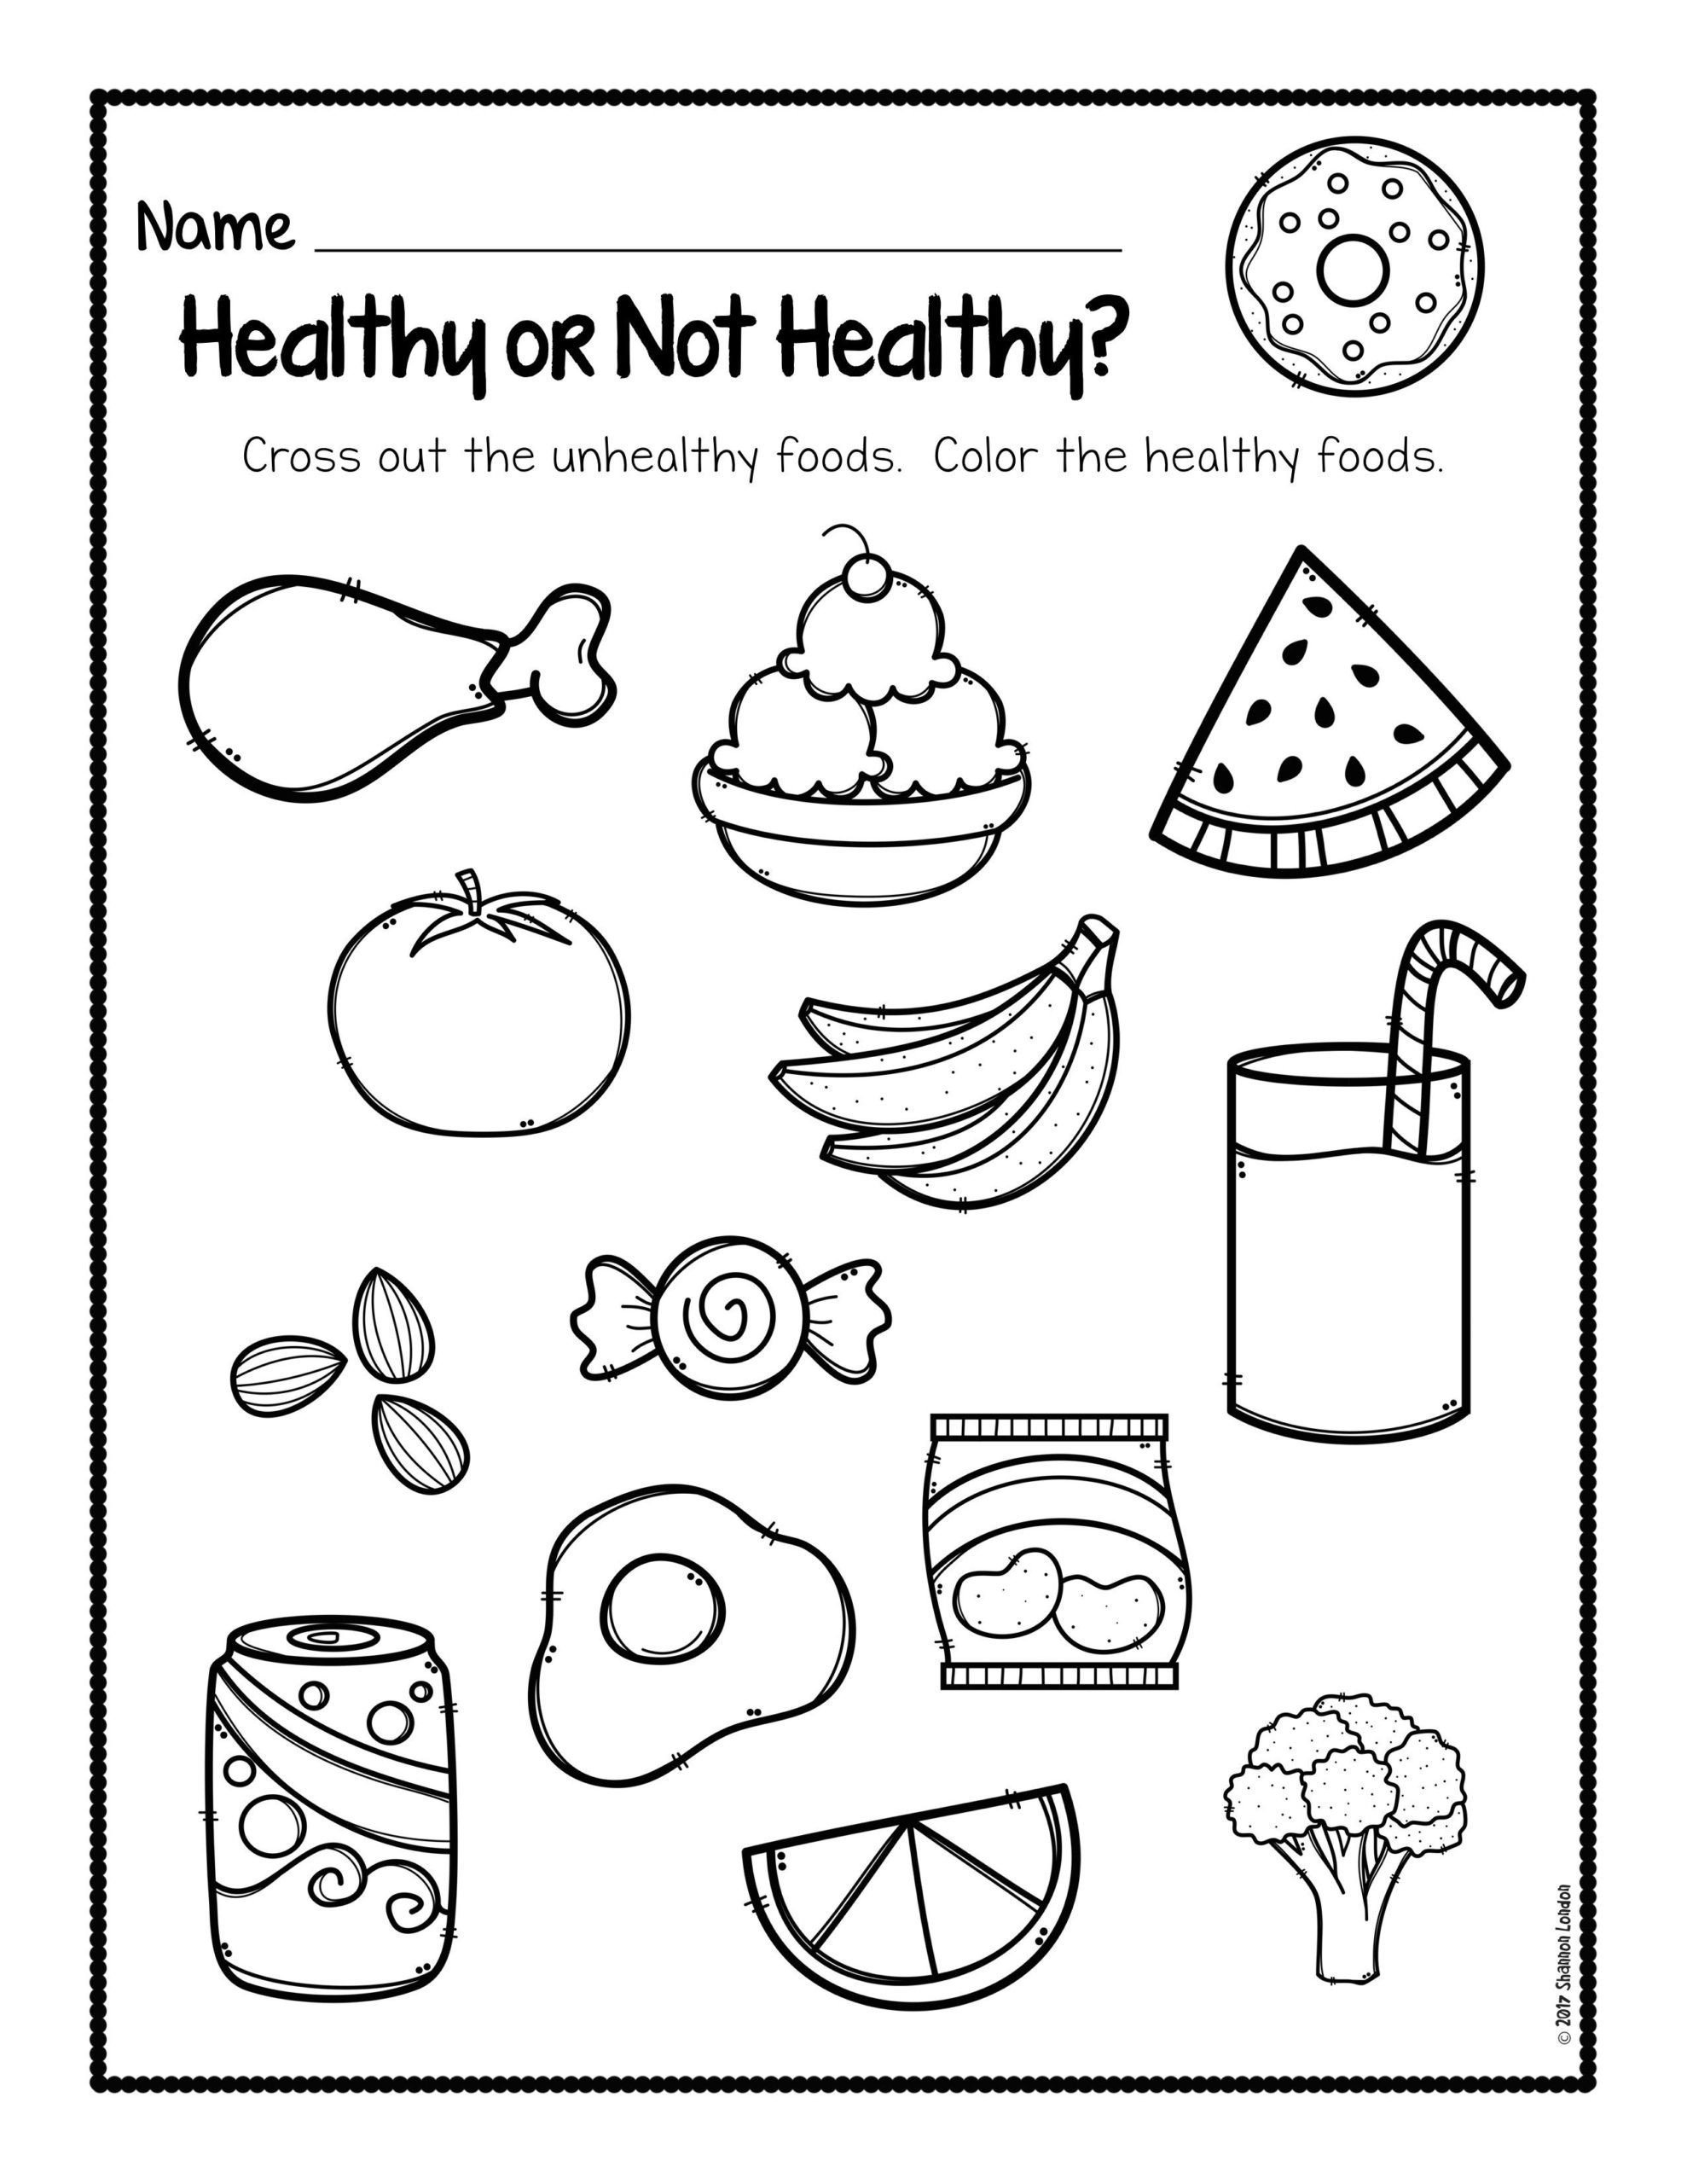 7 Habits for Kids Worksheets Worksheet 2nd Grade Math Worksheets Printable Cutting